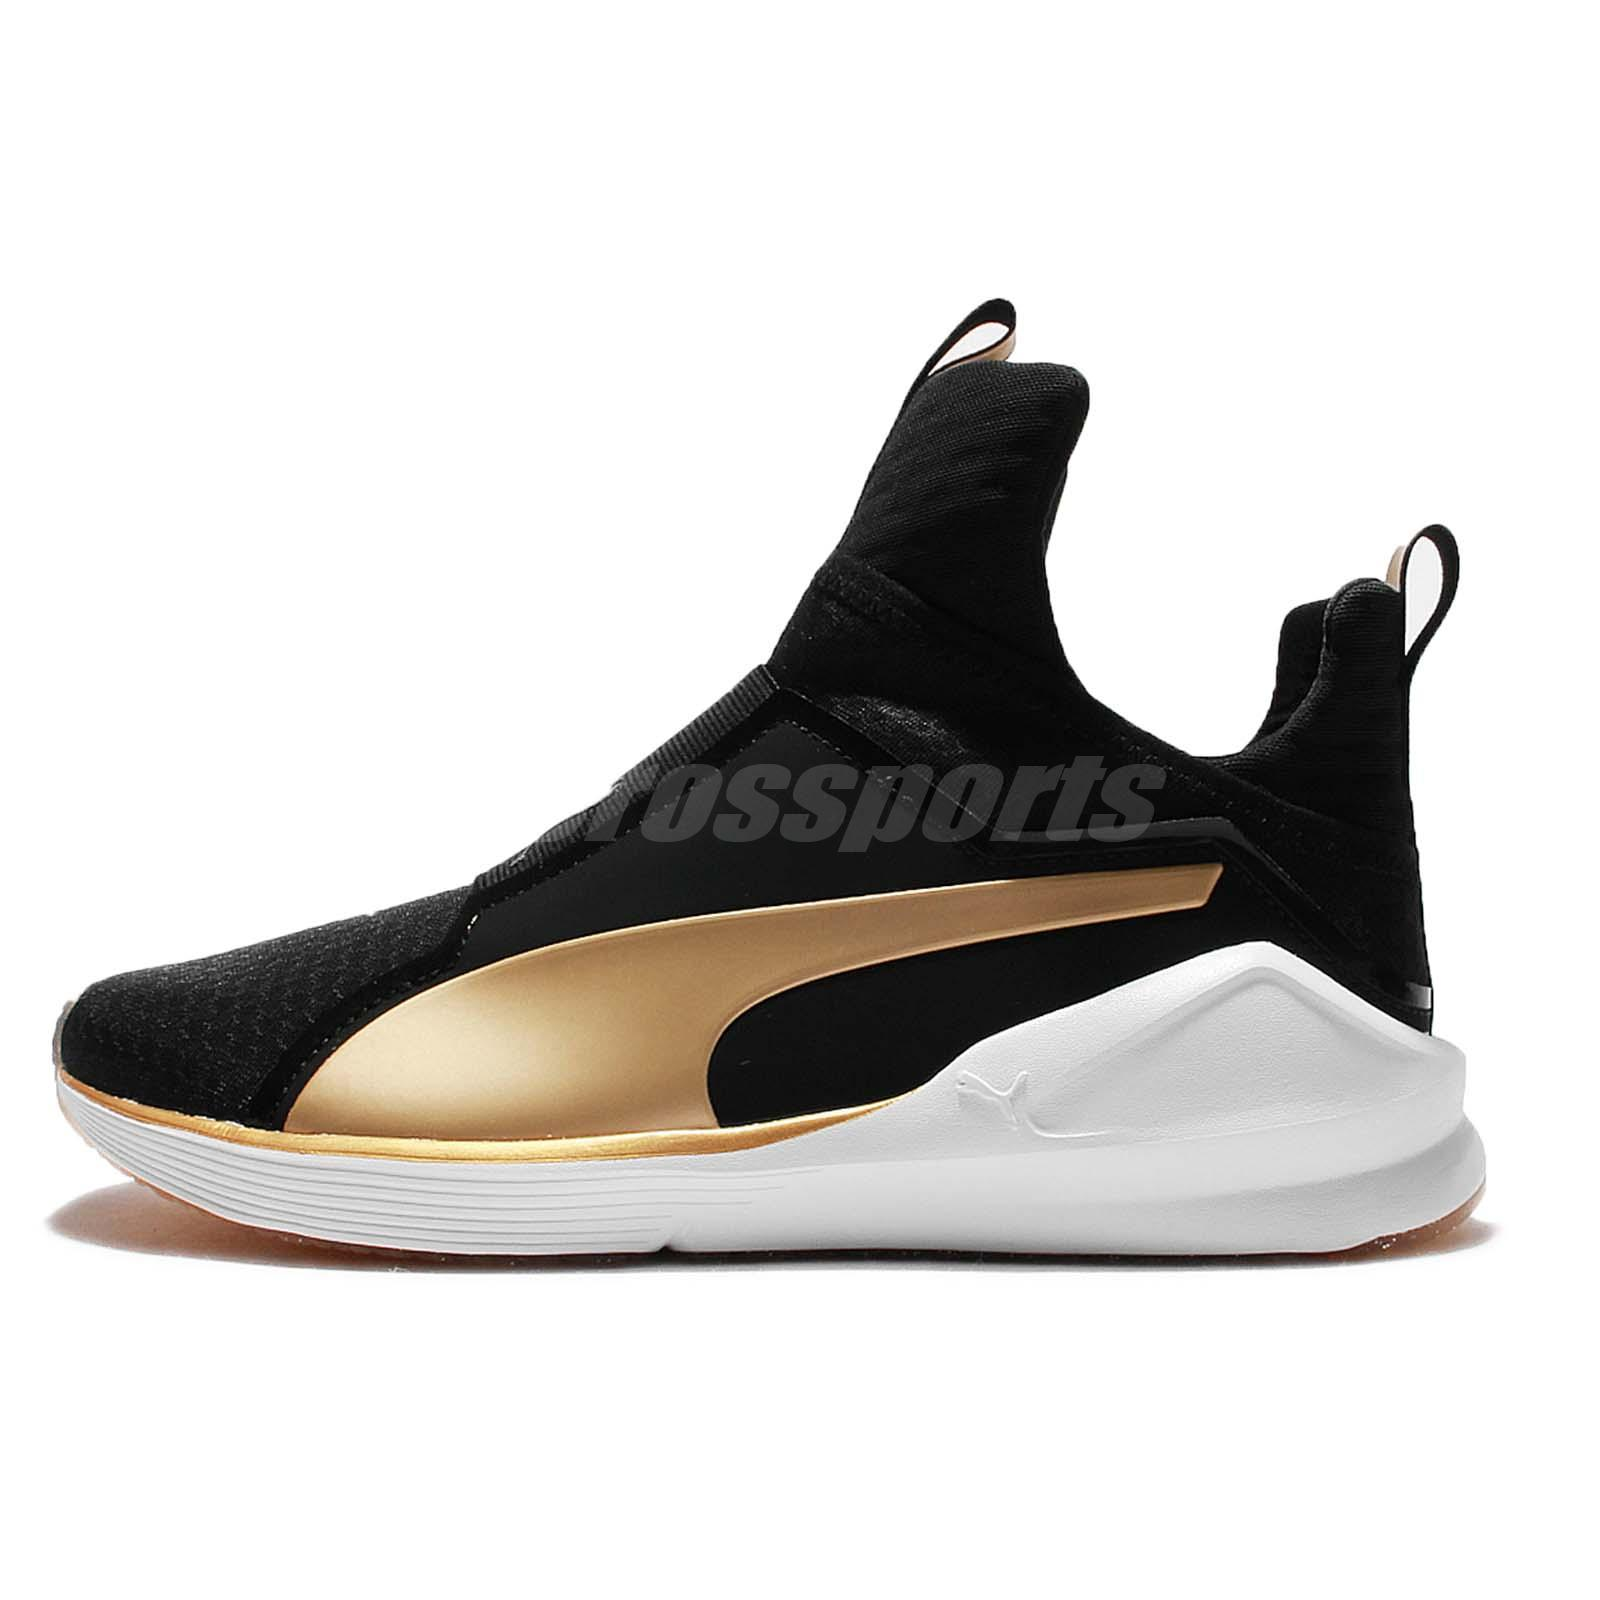 Puma Gold And Black